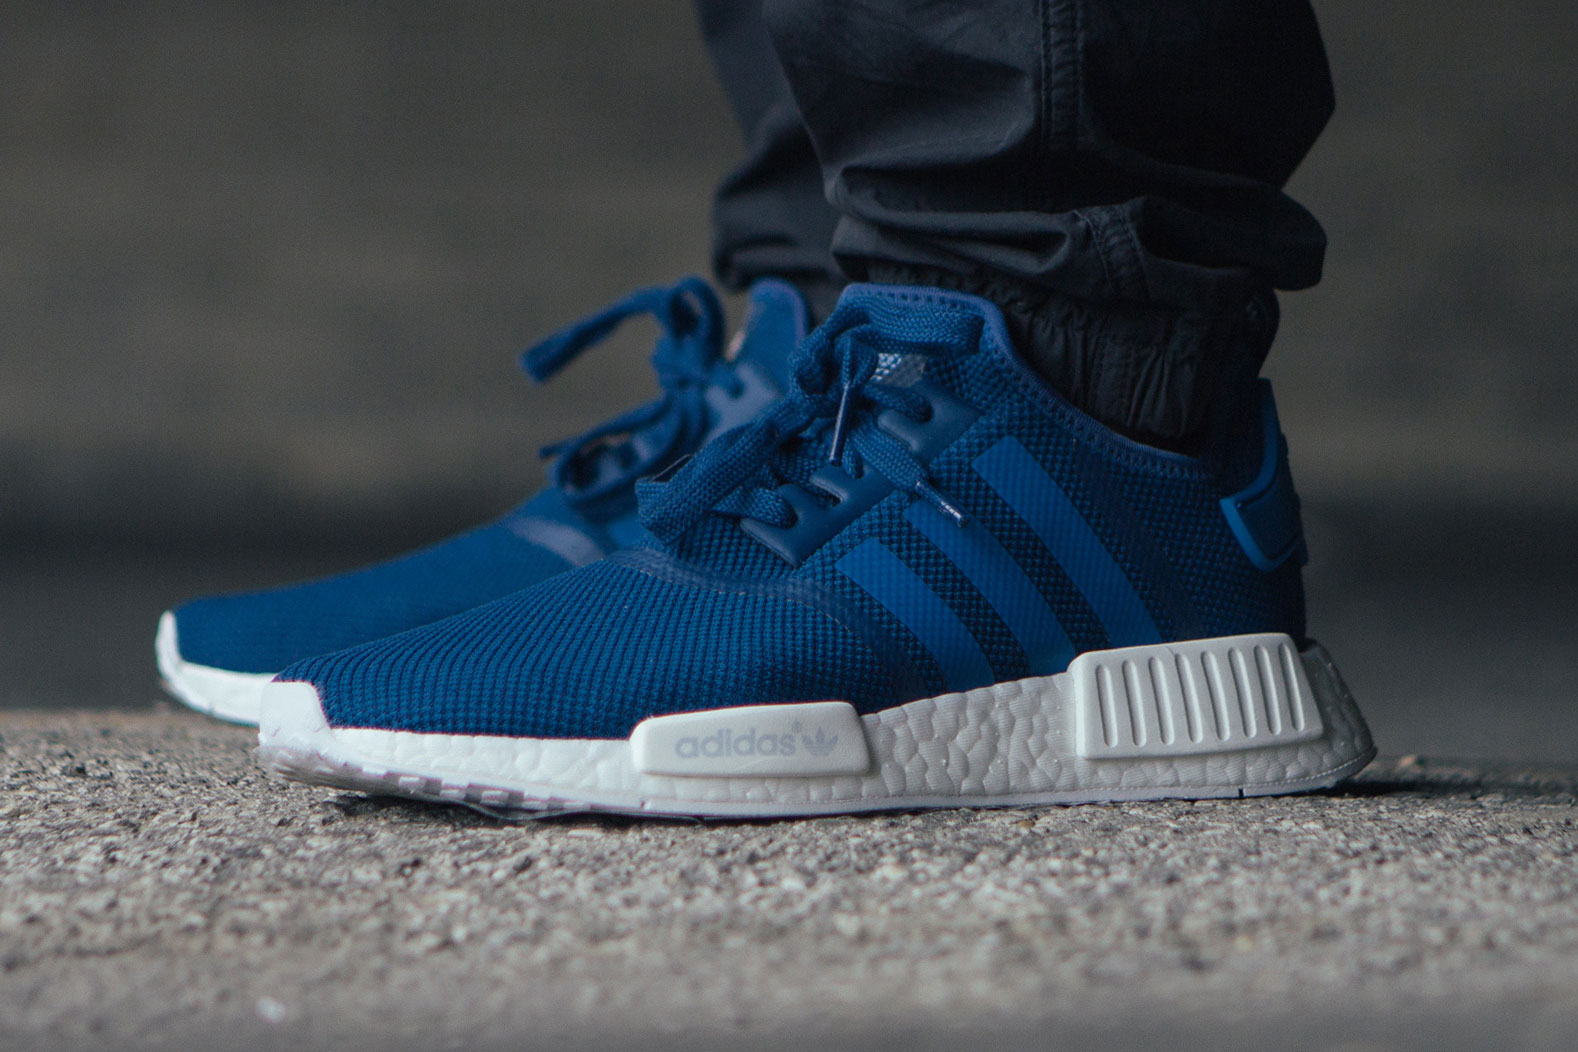 Adidas Originals NMD adidas calcio